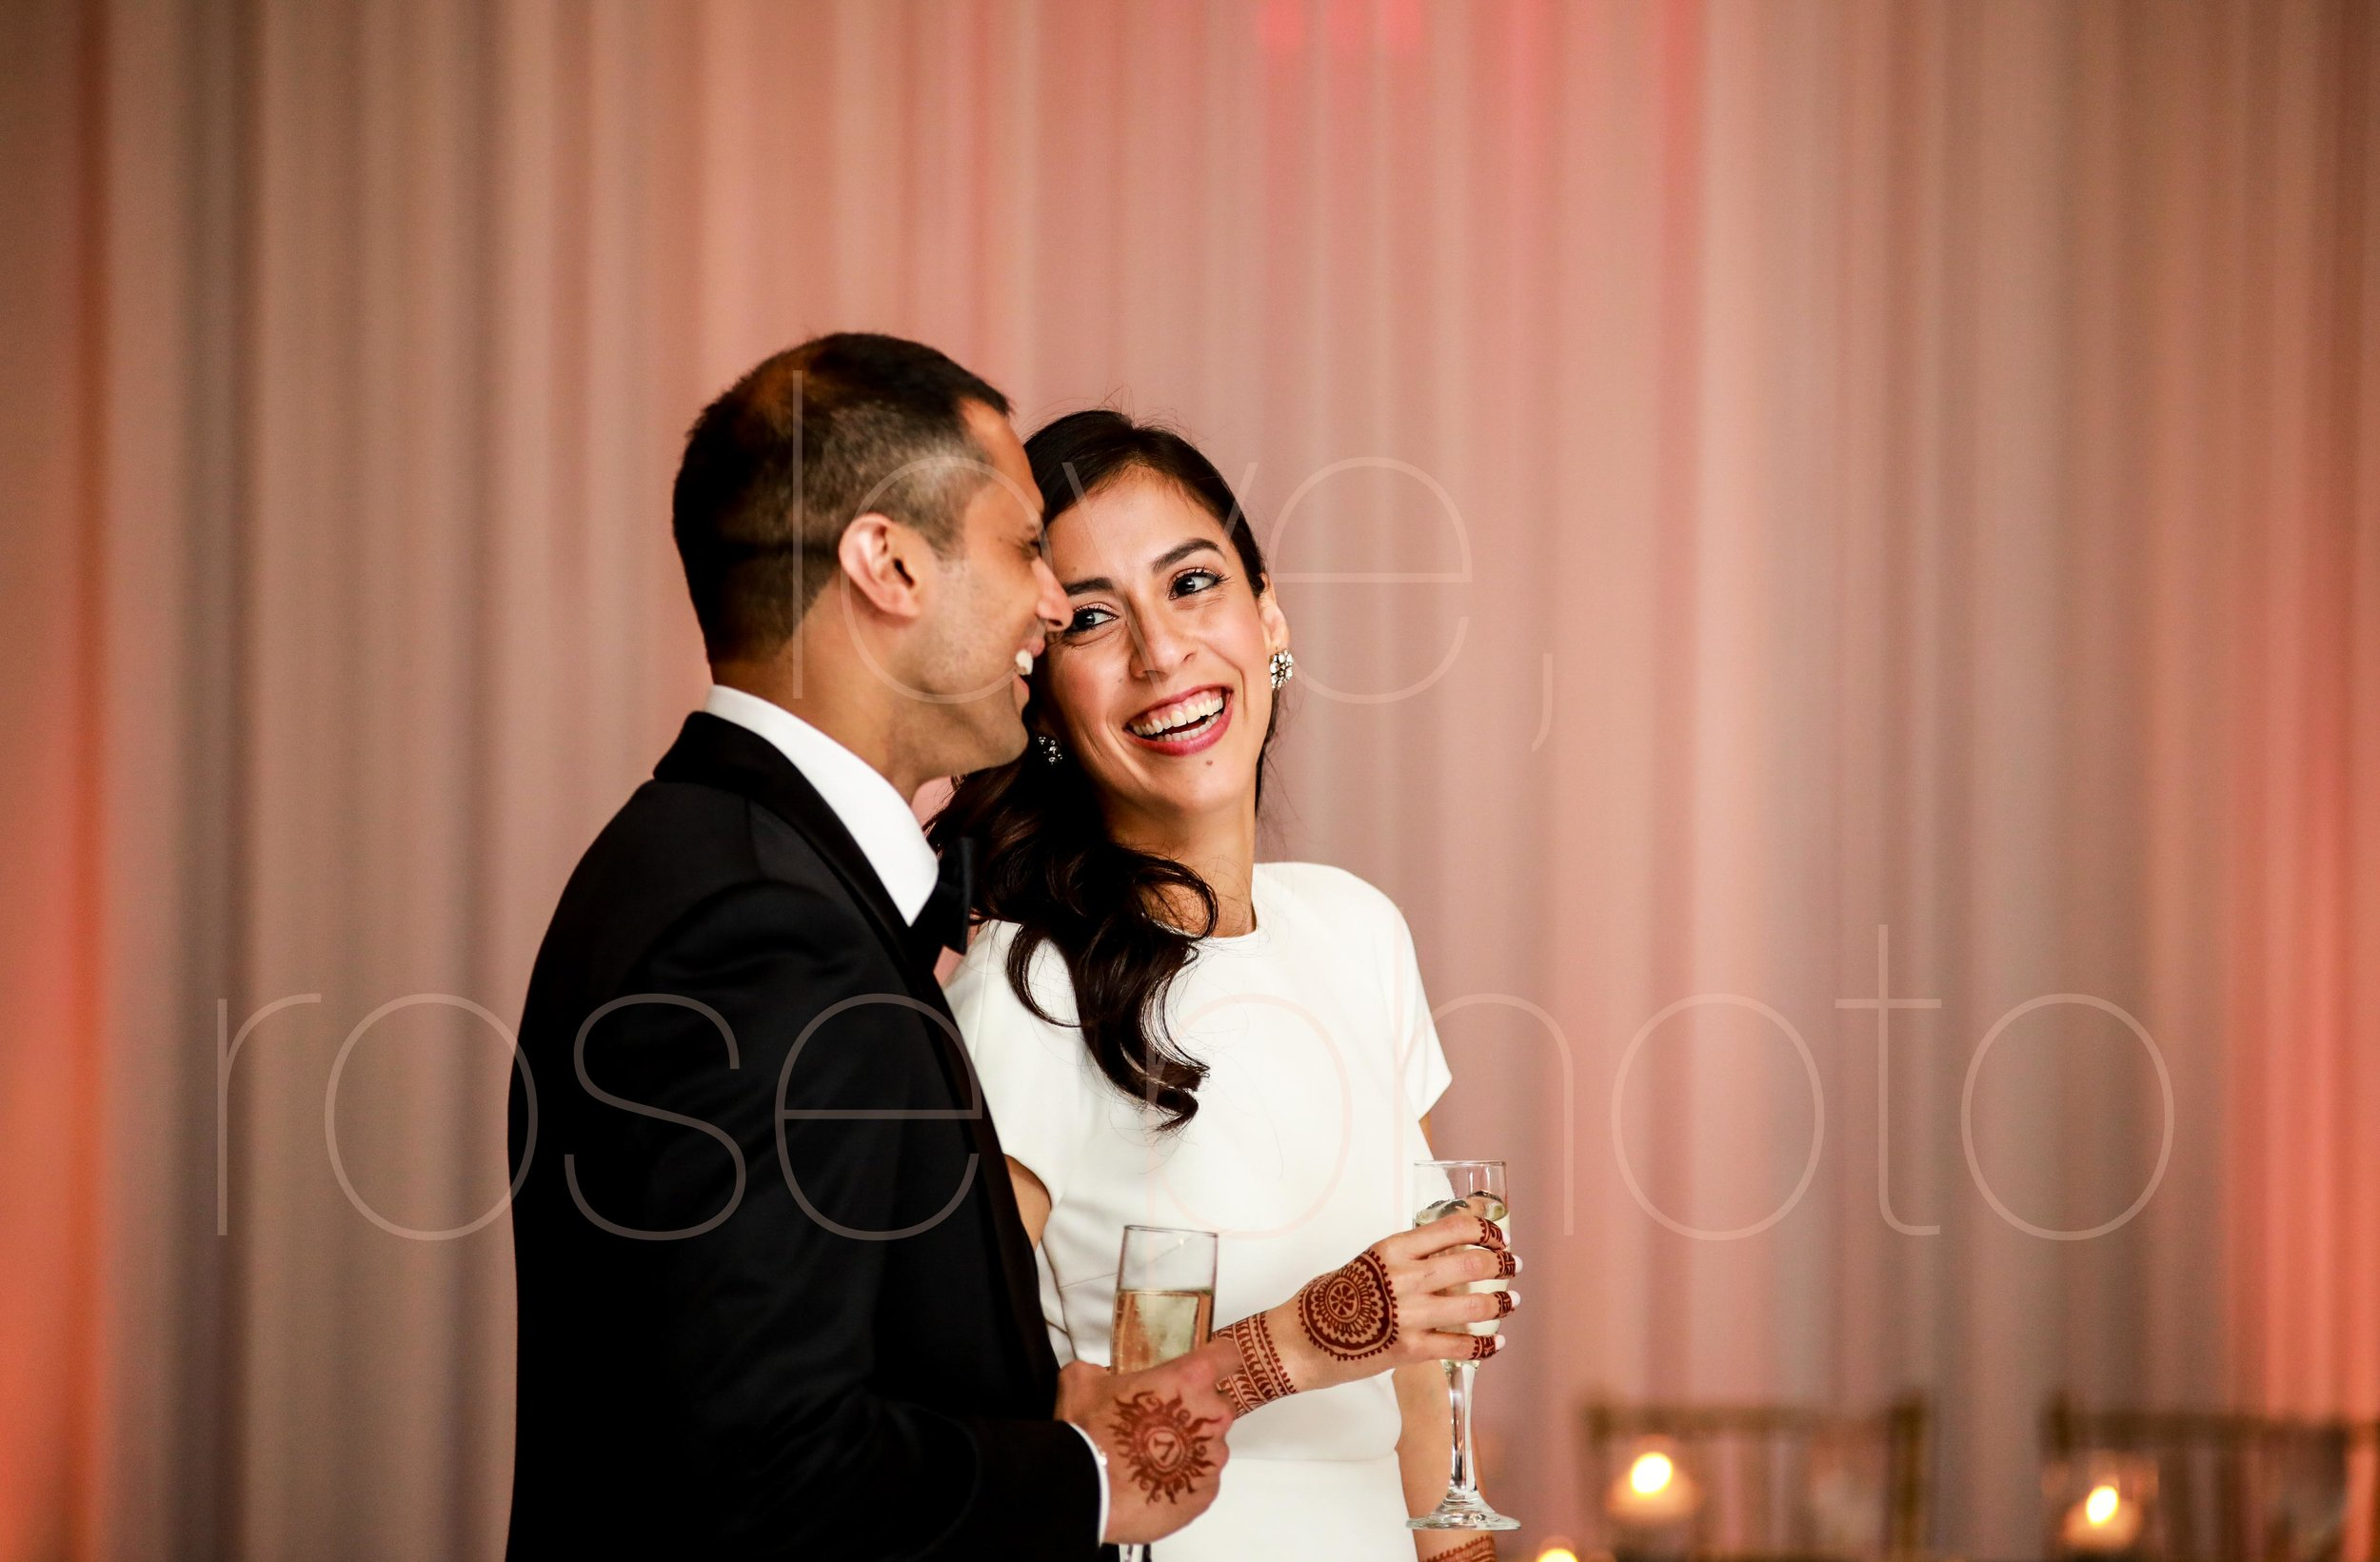 best chicago indian wedding photographer rose photo video collective-108.jpg